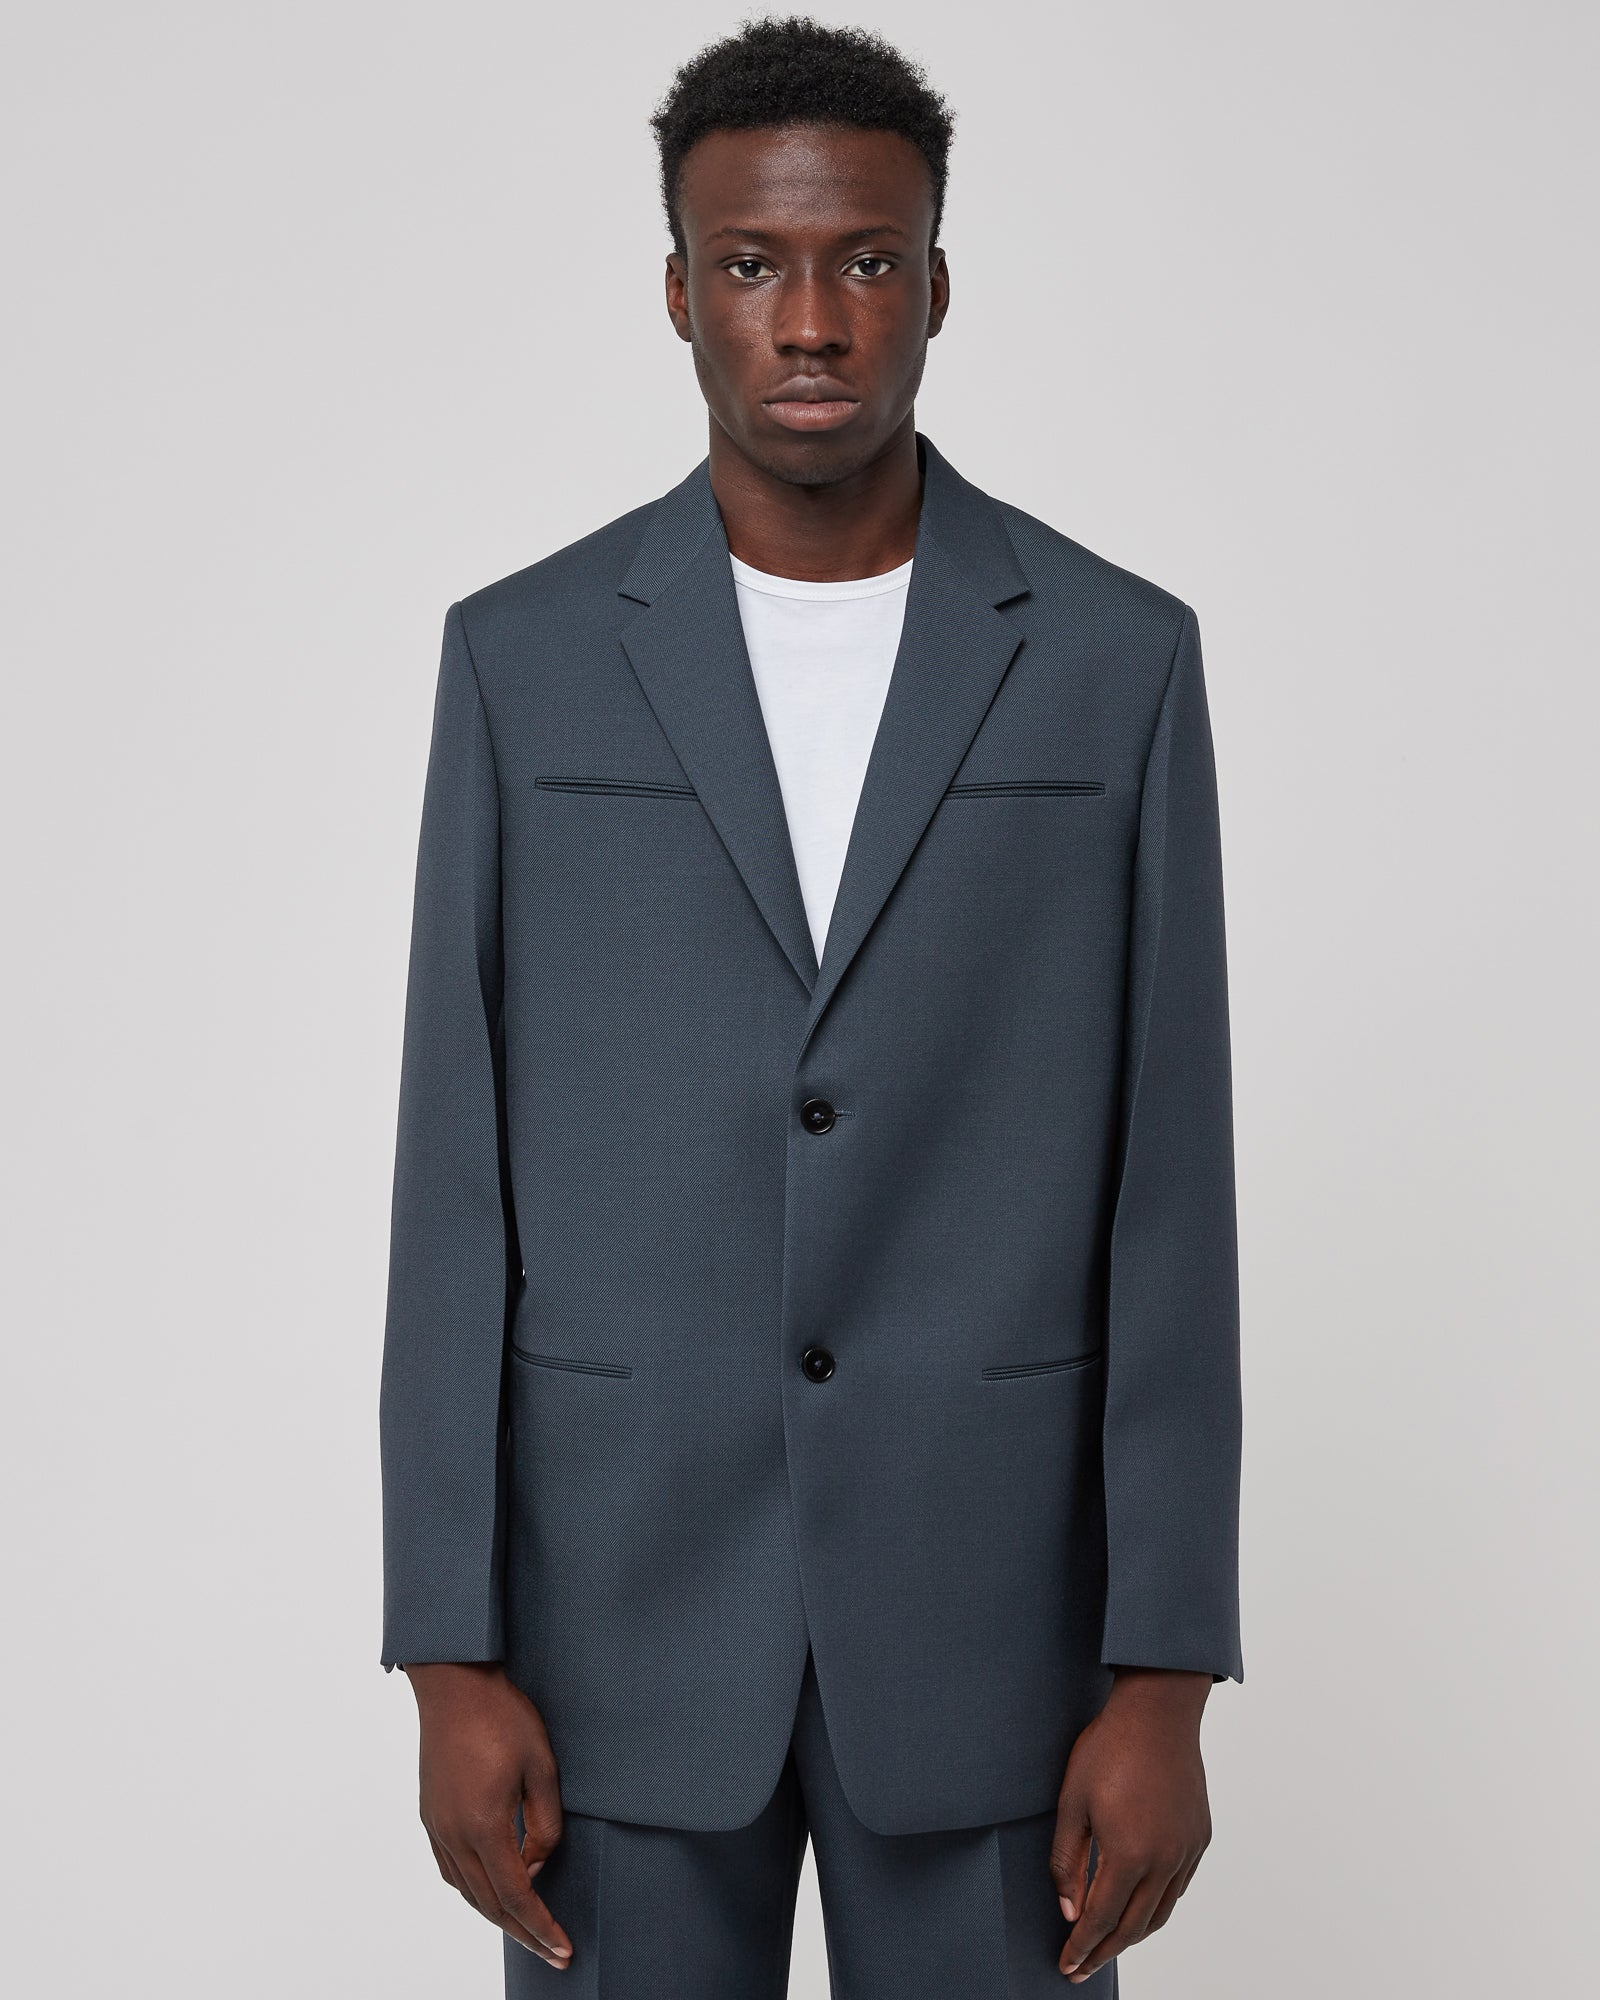 Tailored Jacket in Dark Gray